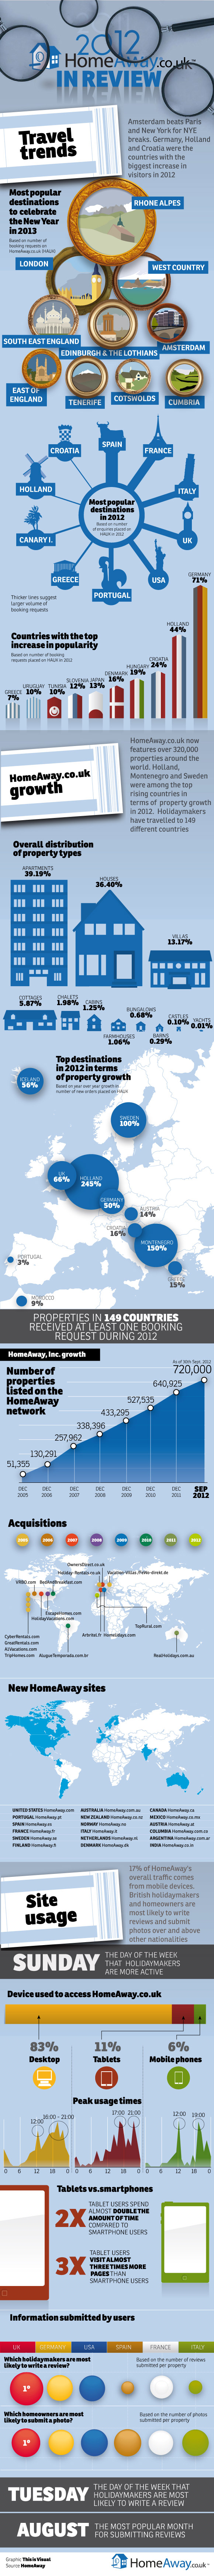 1homeaway-travel-trends-2012